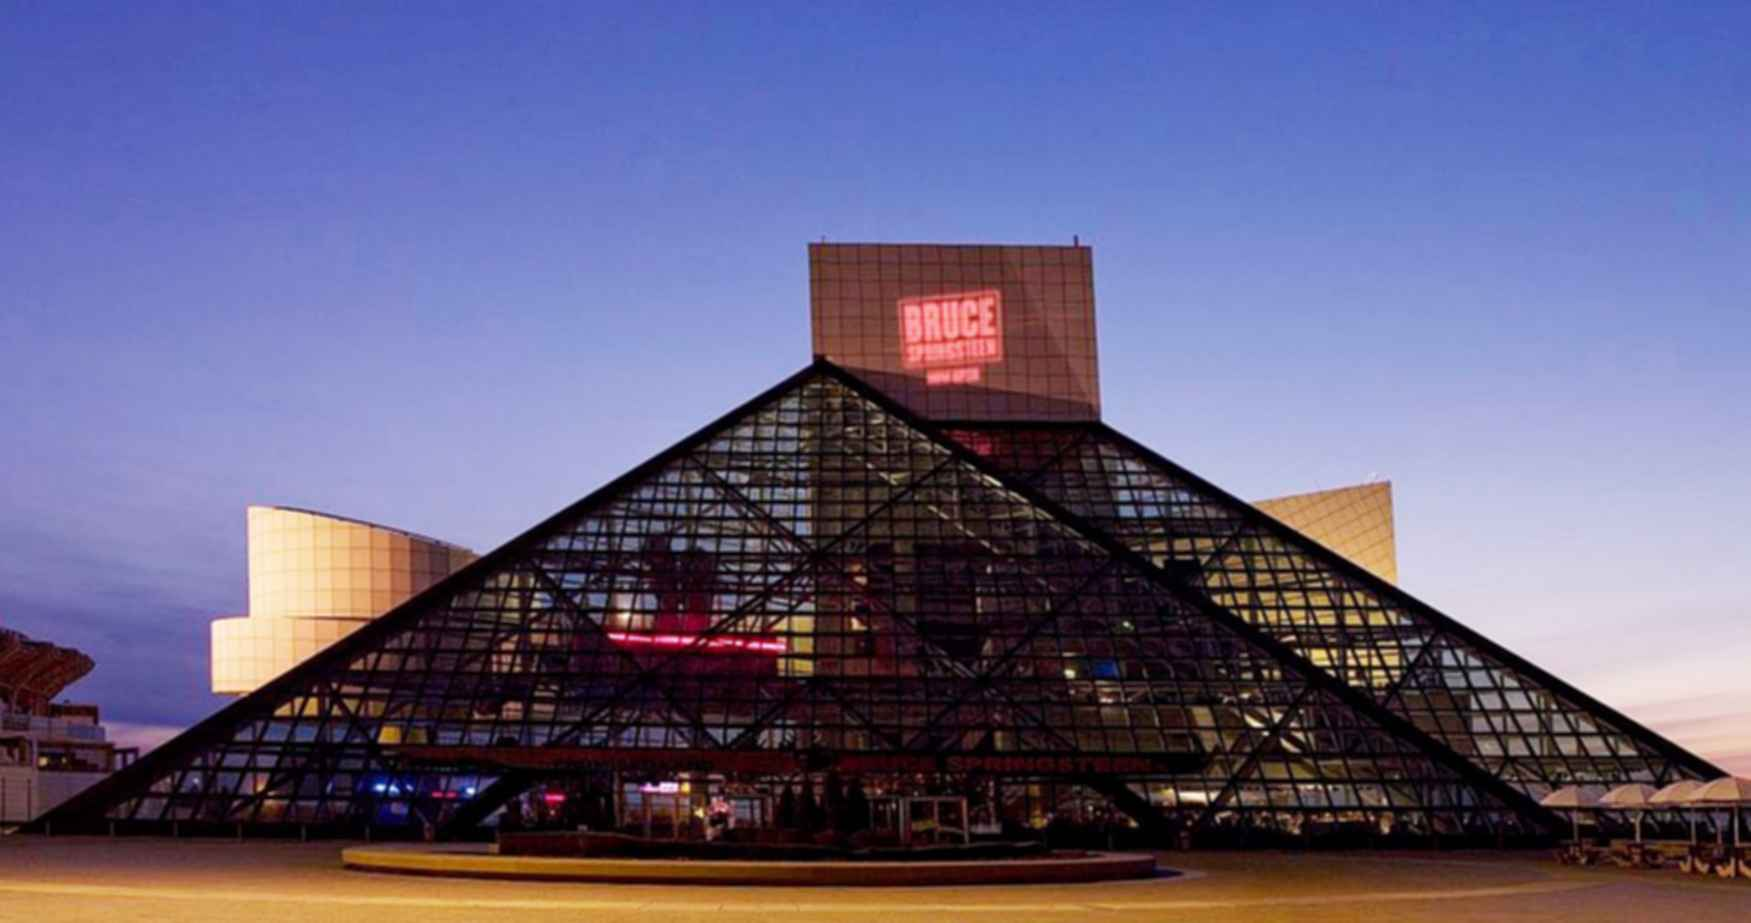 The Rock and Roll Hall of Fame Museum - At Night